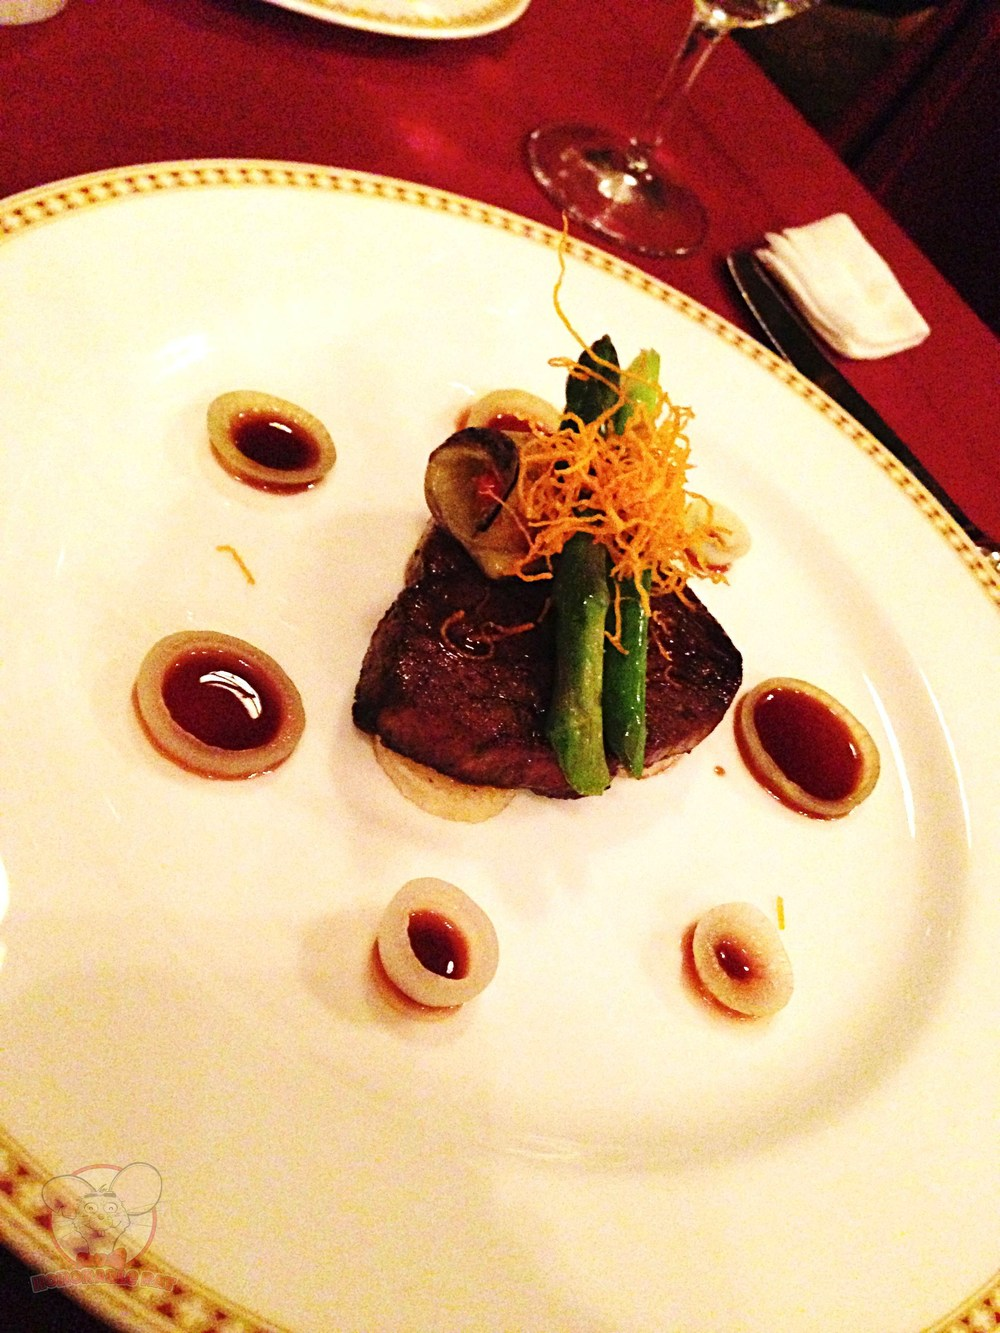 Sauteed Beef Fillet with Red Wine Sauce